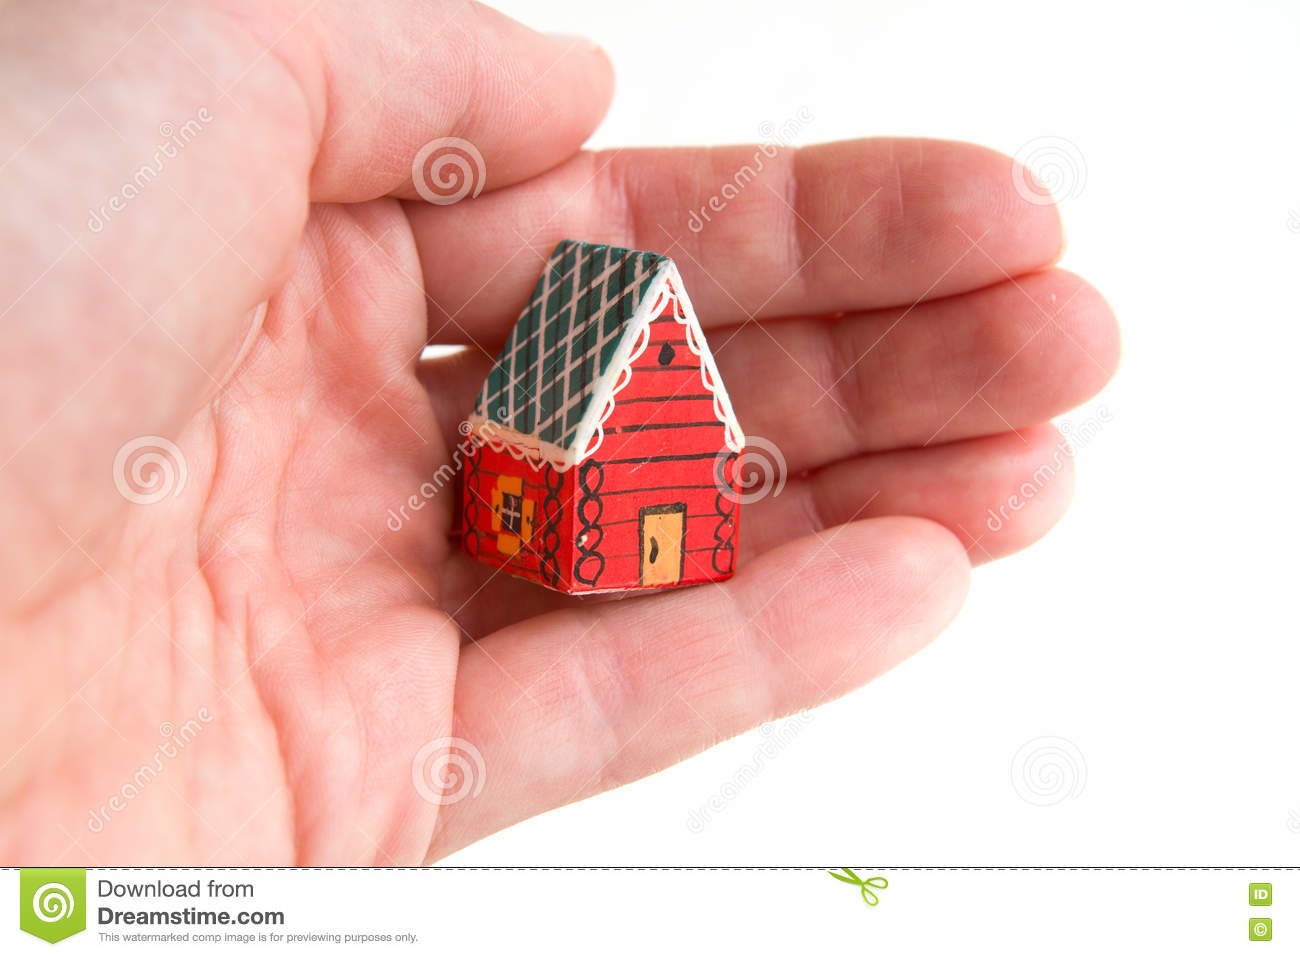 Little red house in a hand